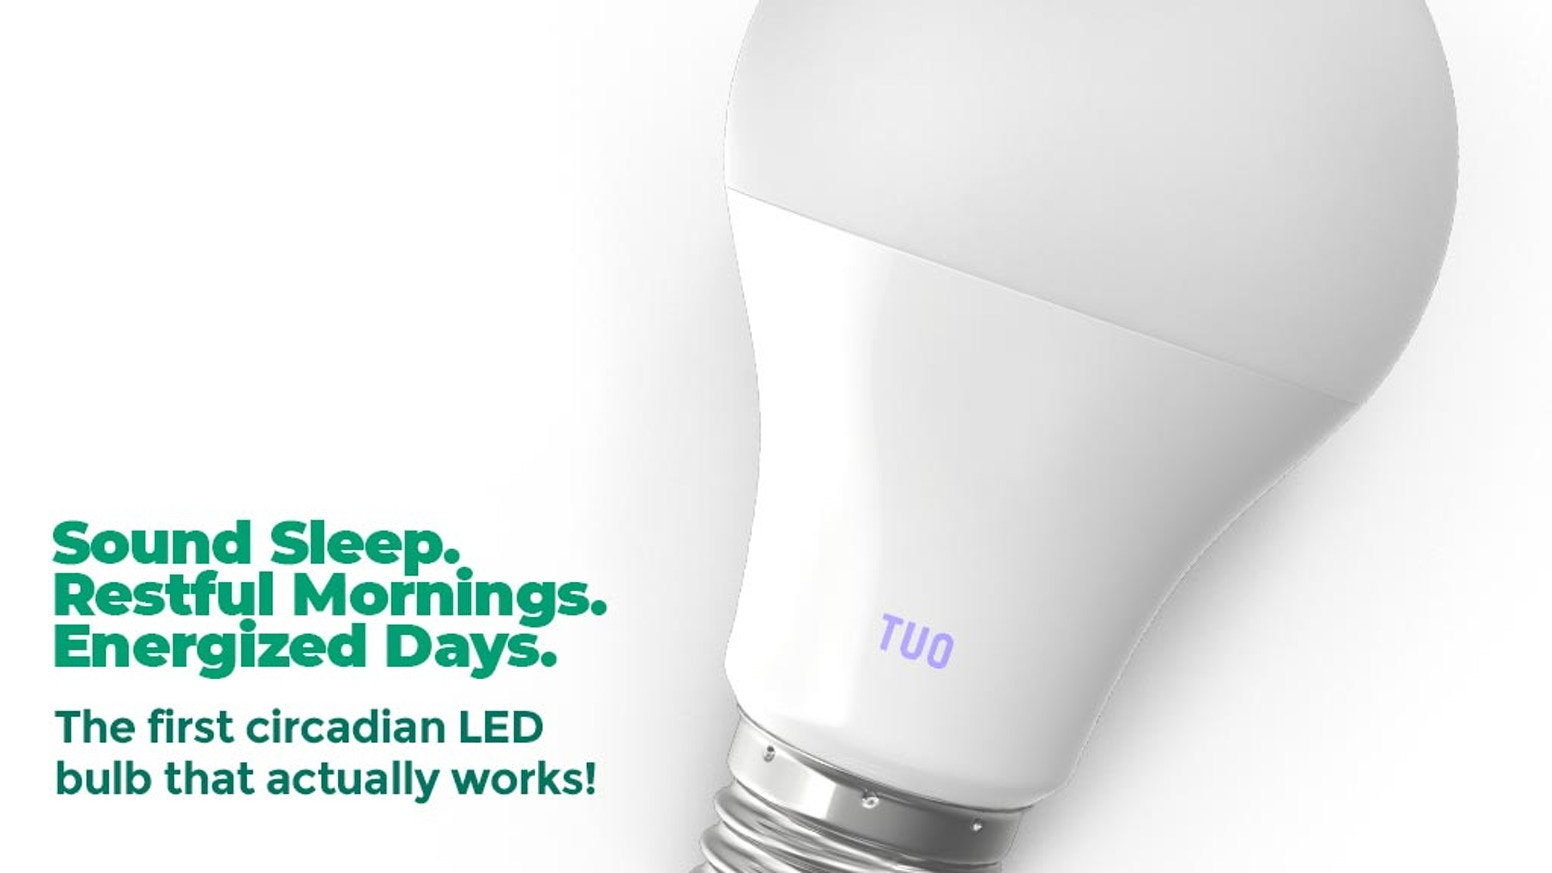 Wake energized everyday - using TUO light a few minutes each morning.  New circadian lighting science for a healthy body clock.